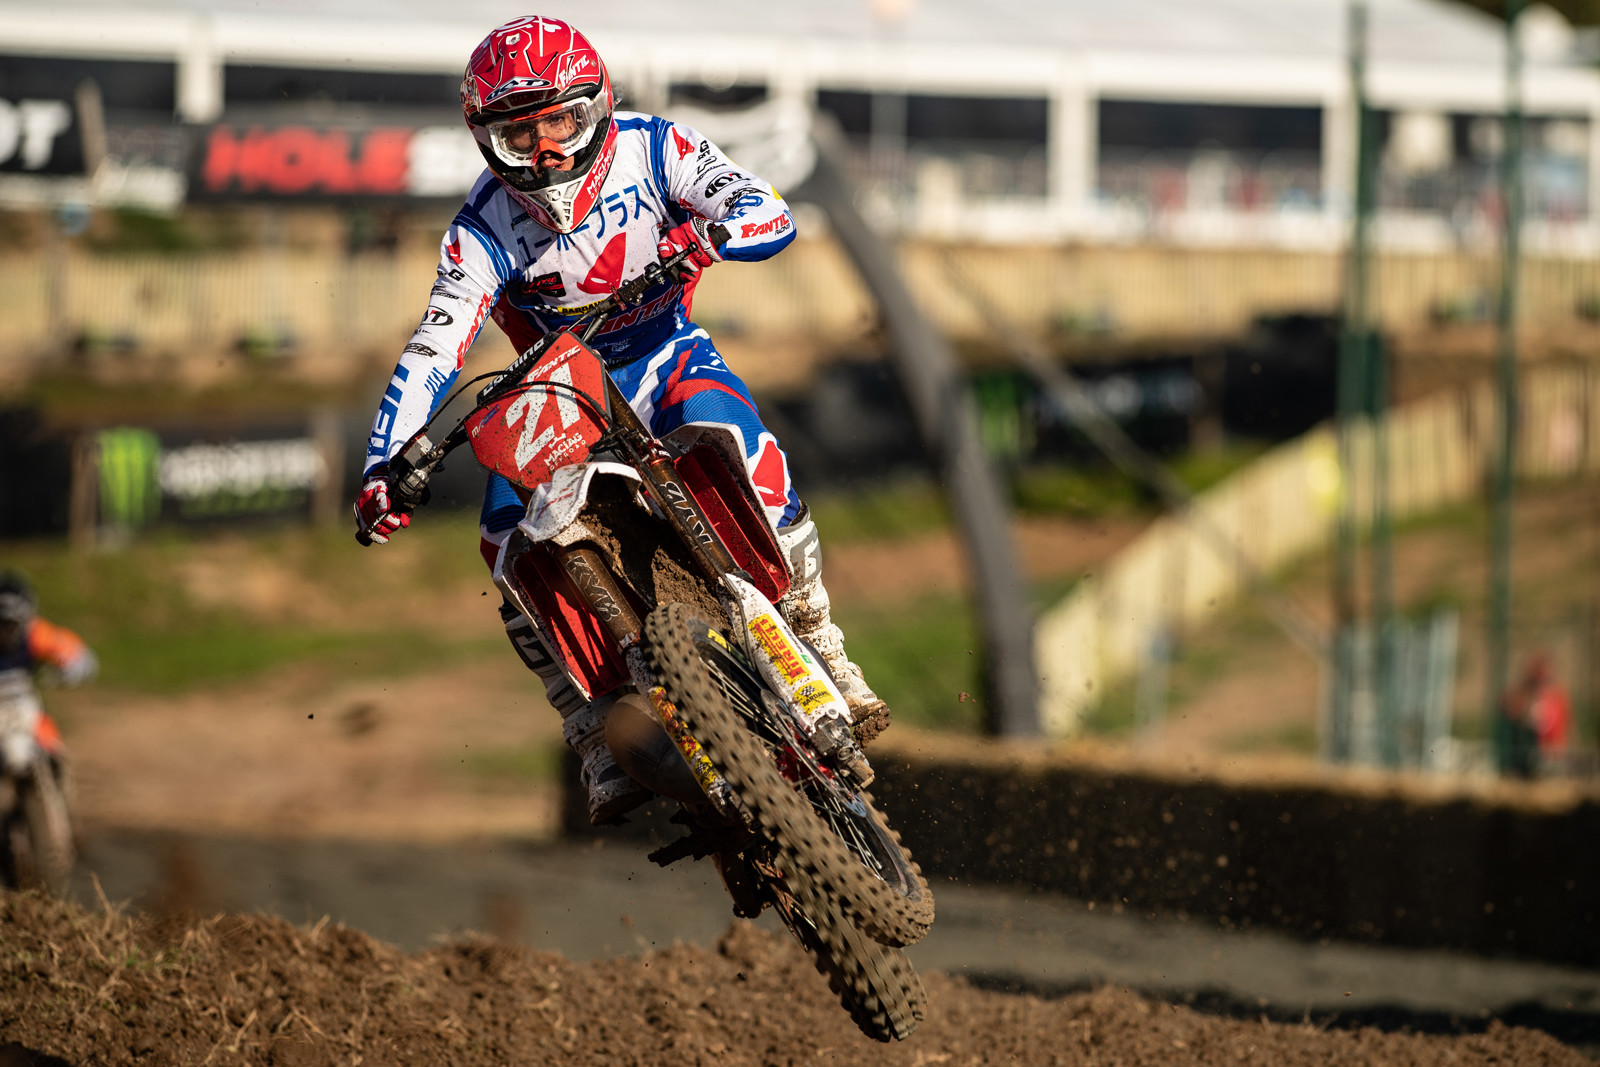 In EMX250 Nicholas Lapucci still leads the points on his Fantic XX 250. Long live two-stroke racing.